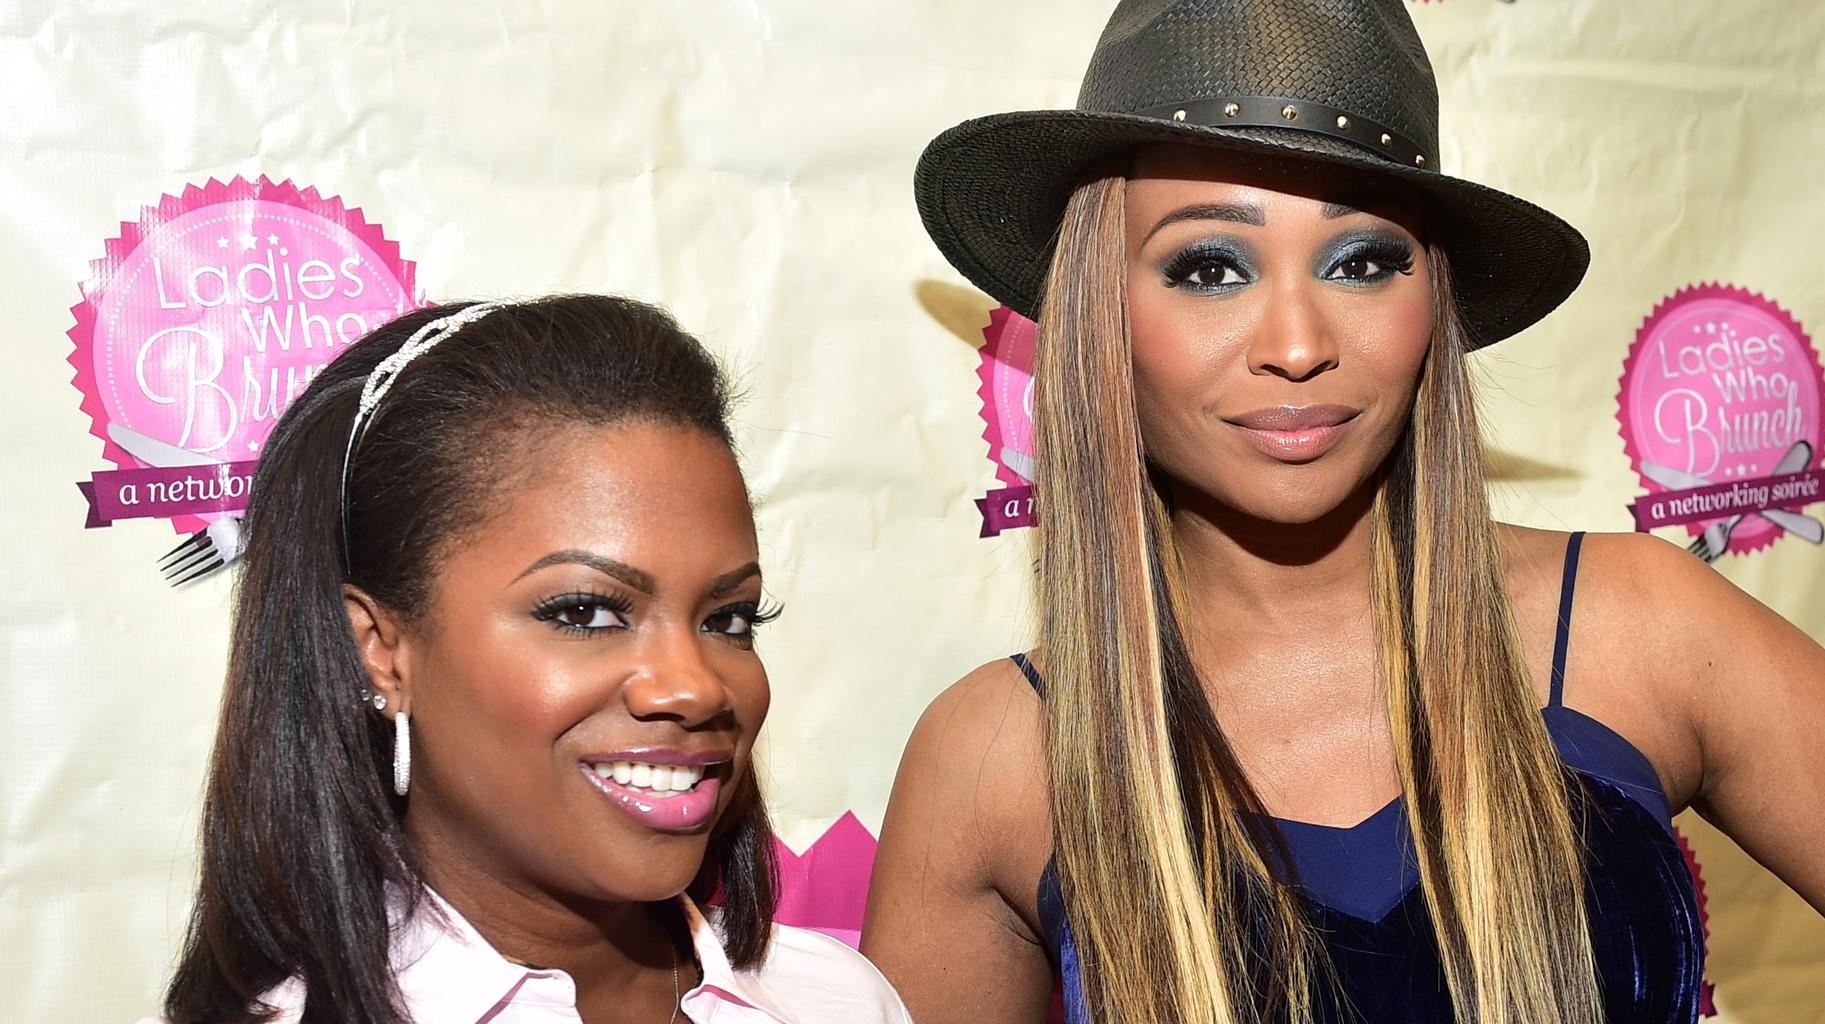 Kandi Burruss Is Trying To Catch Some Glow From Happy Cynthia Bailey